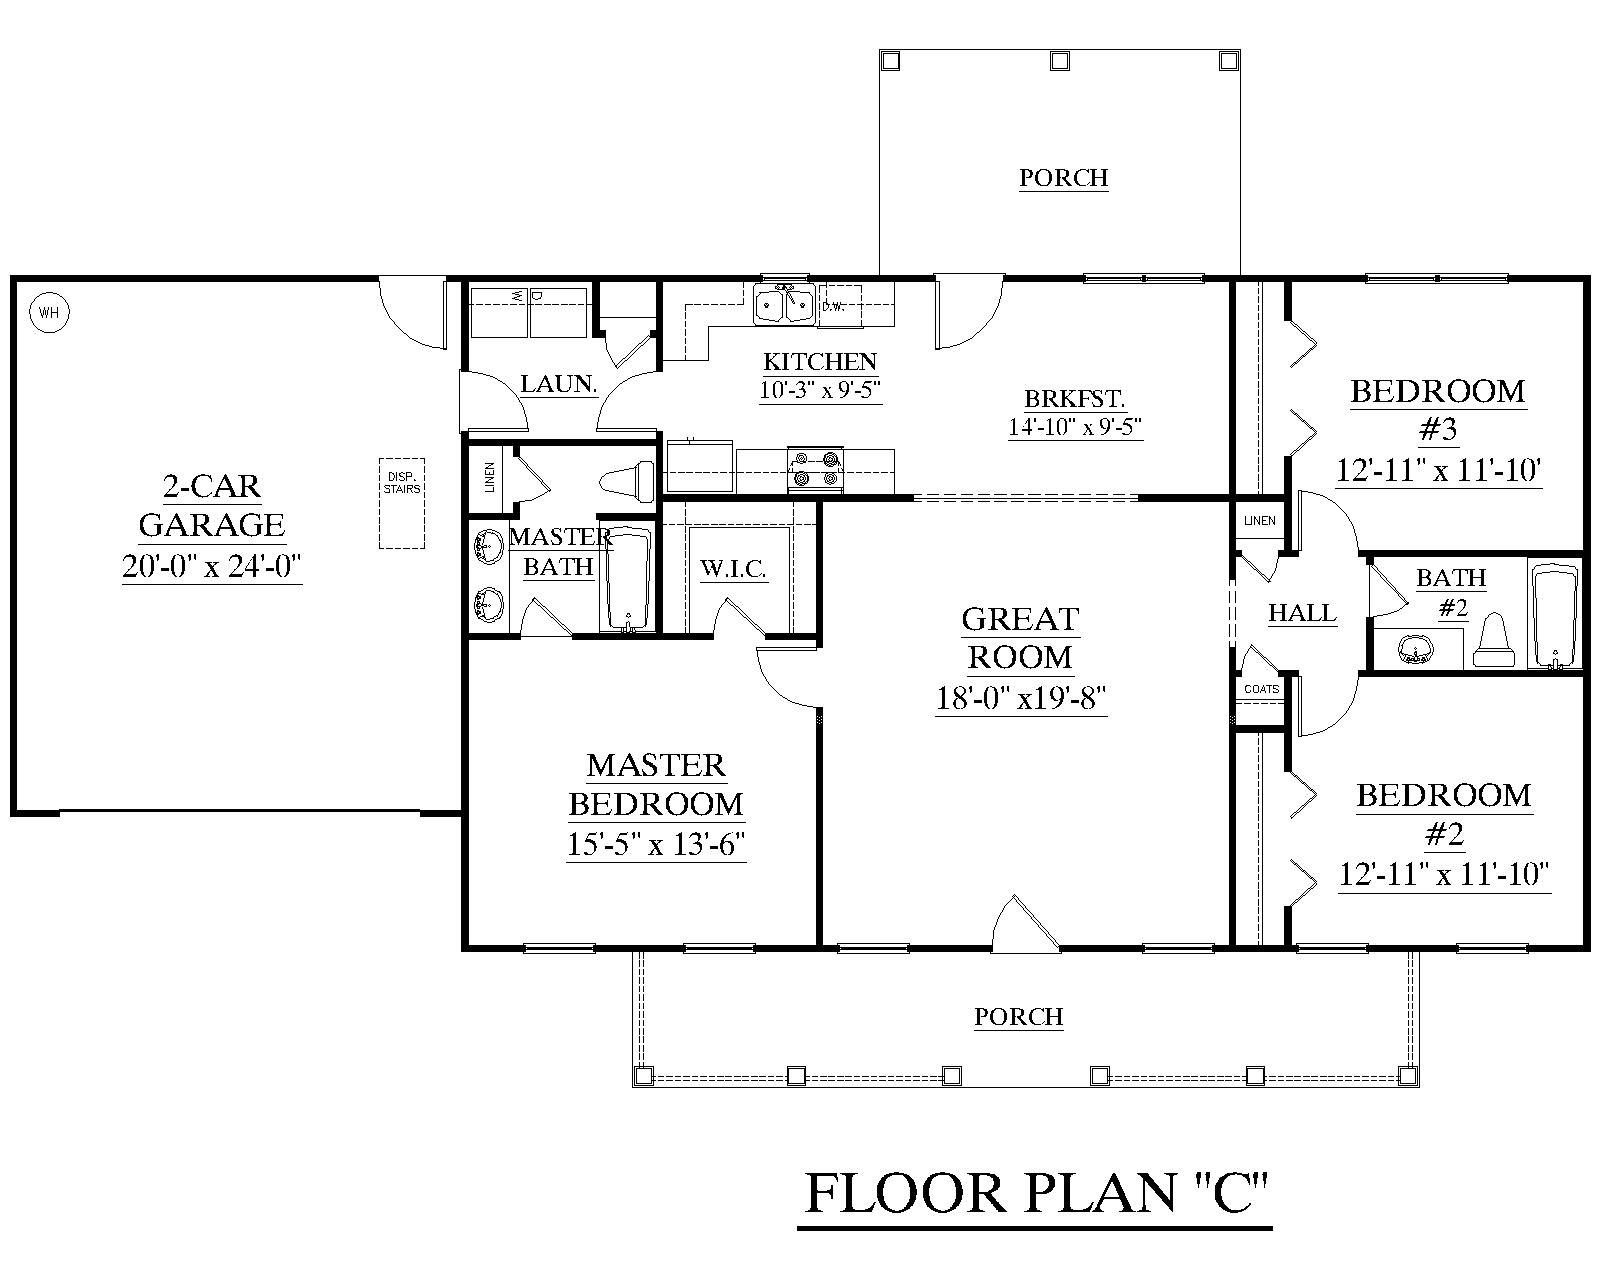 House plan 1500 c the james c attractive one story ranch for 3 bedroom ranch plans